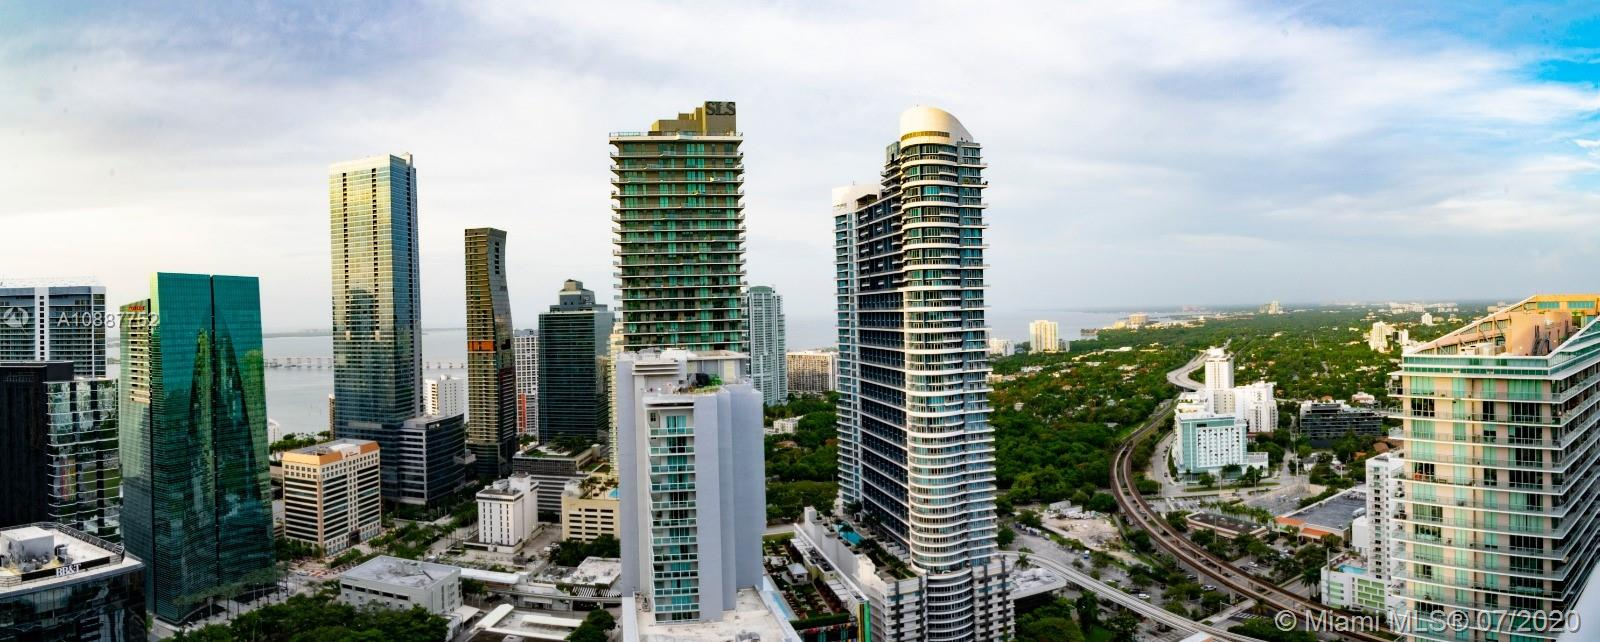 AMAZING SKYLINE VIEWS.1 Bed + DEN/ 1 BATH UNIT AT LUXURY MILLECENTO IN THE HEART OF BRICKELL. OPEN KITCHEN WITH QUARTZ COUNTER TOPS, STAINLESS STEEL APPLIANCES, W/D INSIDE. AMENITIES, SPA, THEATER, POOLS AND LOBBY. SERVICES 24/7, VALET, CONCIERGE, SECURITY. CONVENIENTLY LOCATED WALKING DISTANCE TO ENTERTAINMENT, SHOPS, RESTAURANTS, SUPERMARKETS.